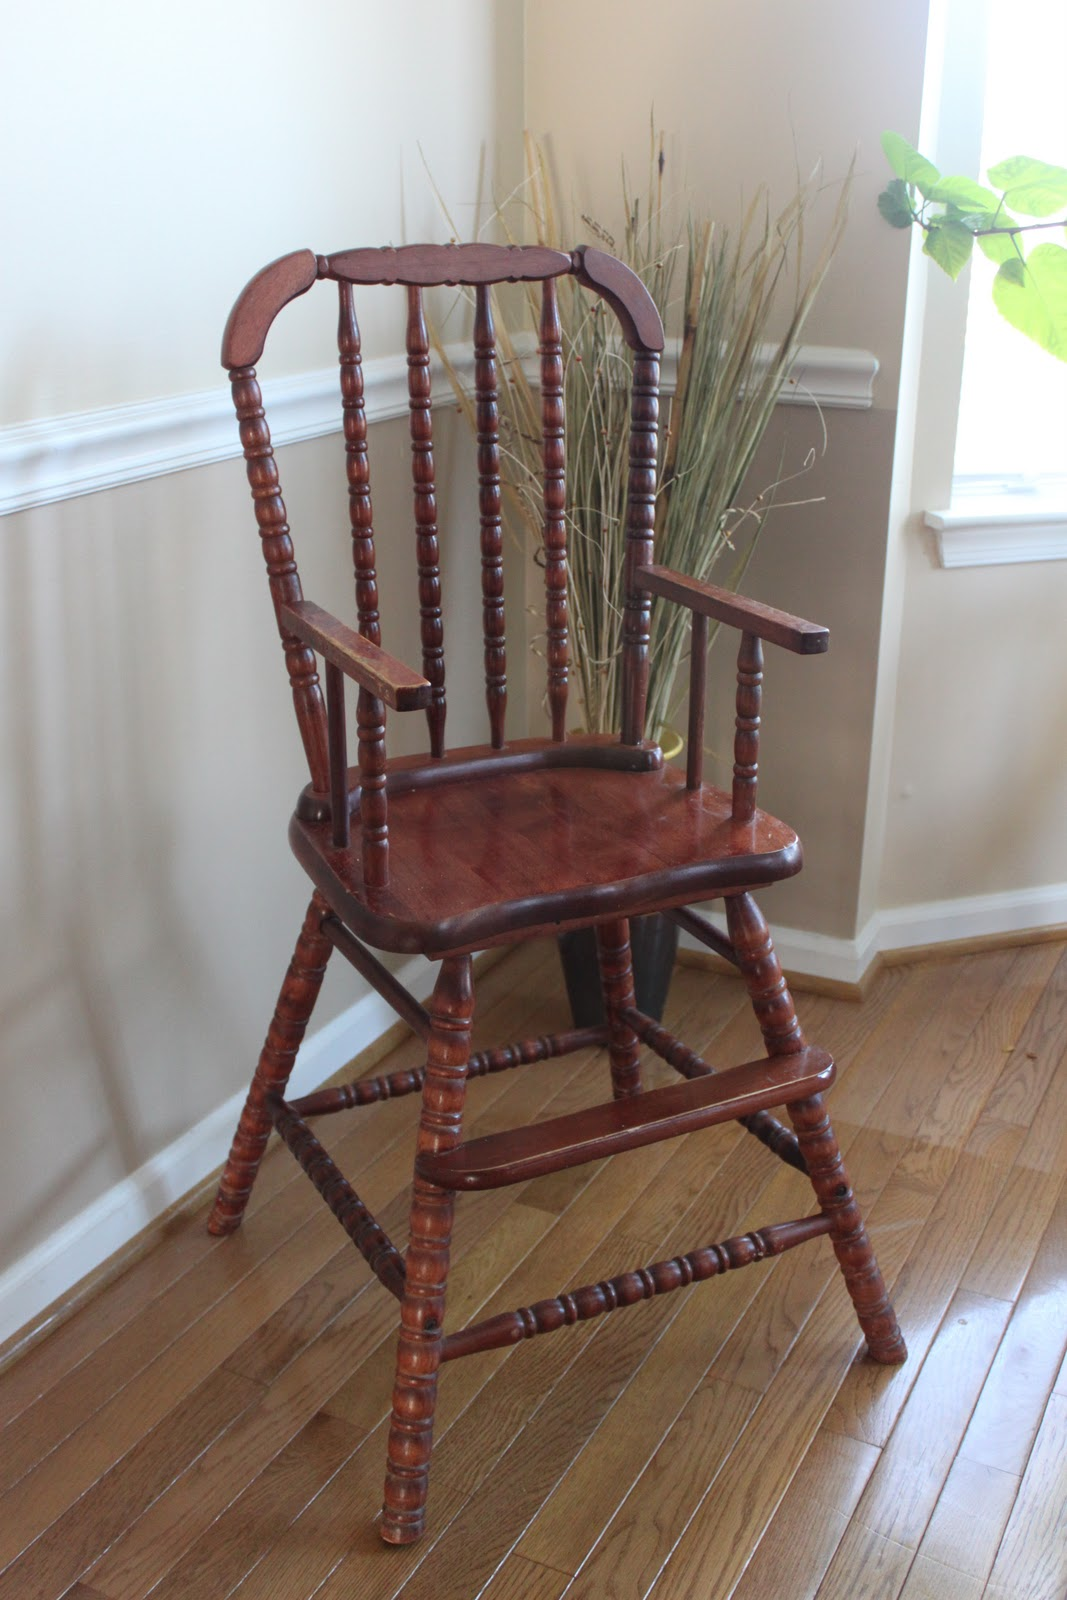 Fabulous Jenny Lind High Chair Unemploymentrelief Wooden Chair Designs For Living Room Unemploymentrelieforg